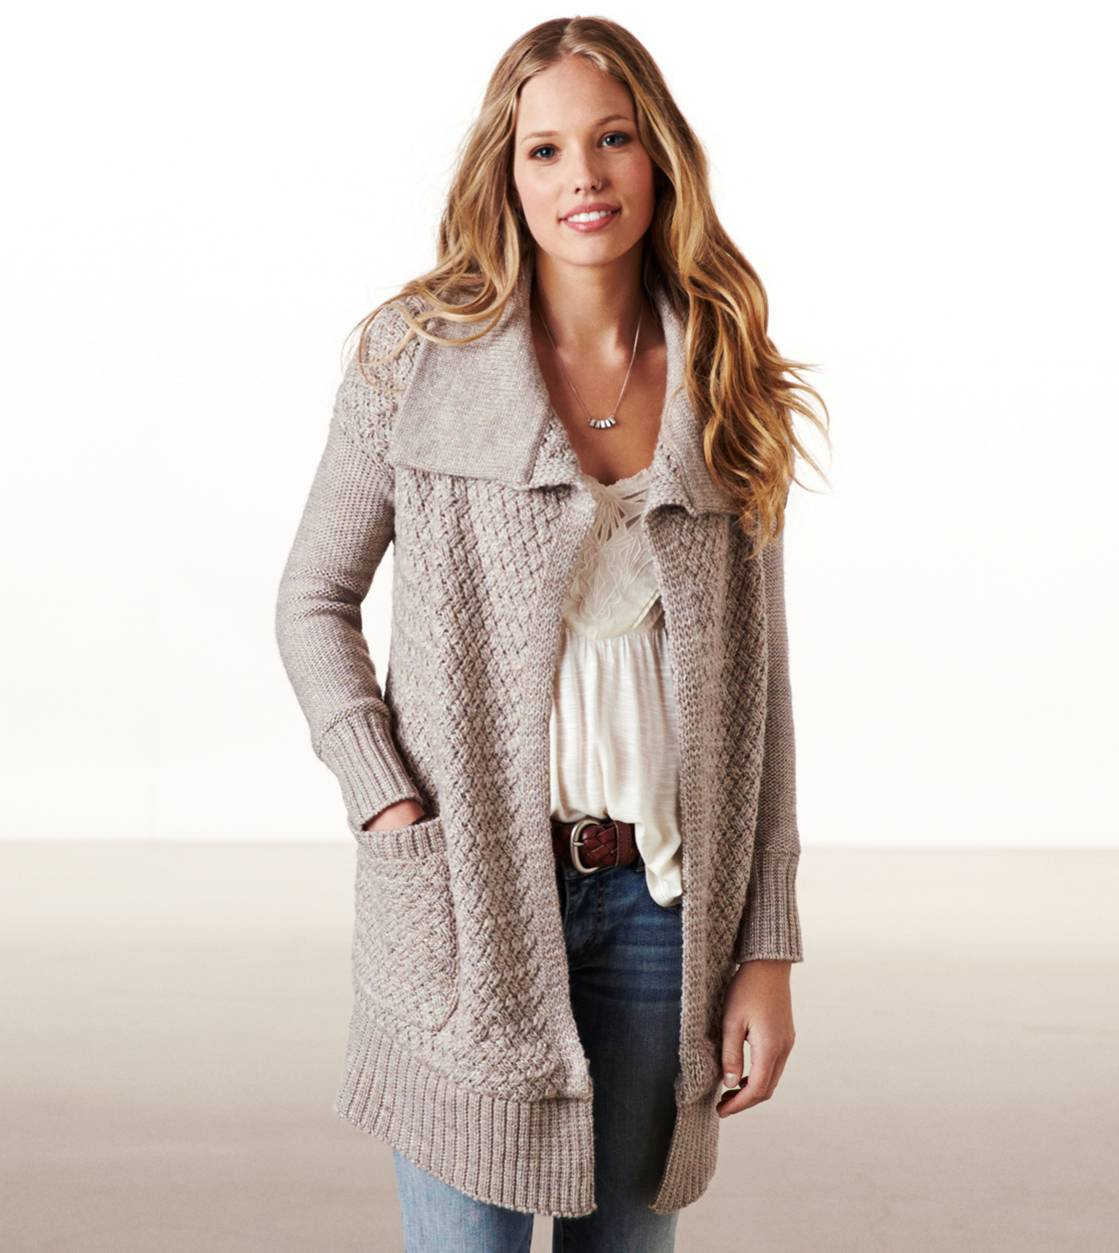 Brown Heather AE Shimmer Stitch Sweater Coat